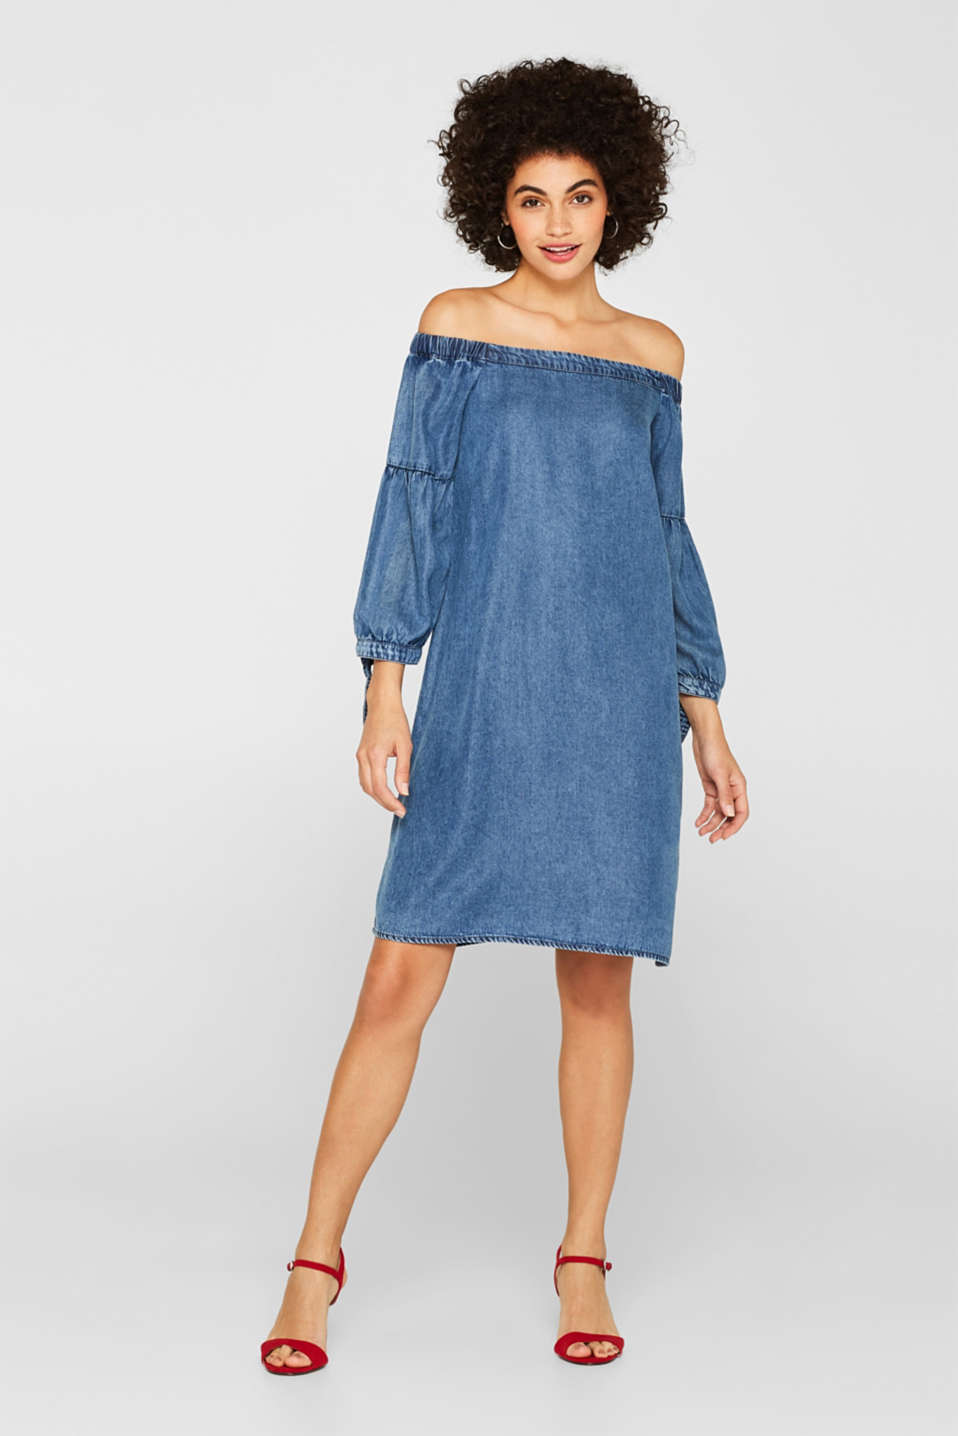 Off-the-shoulder dress in a denim look with bows, GREY BLUE, detail